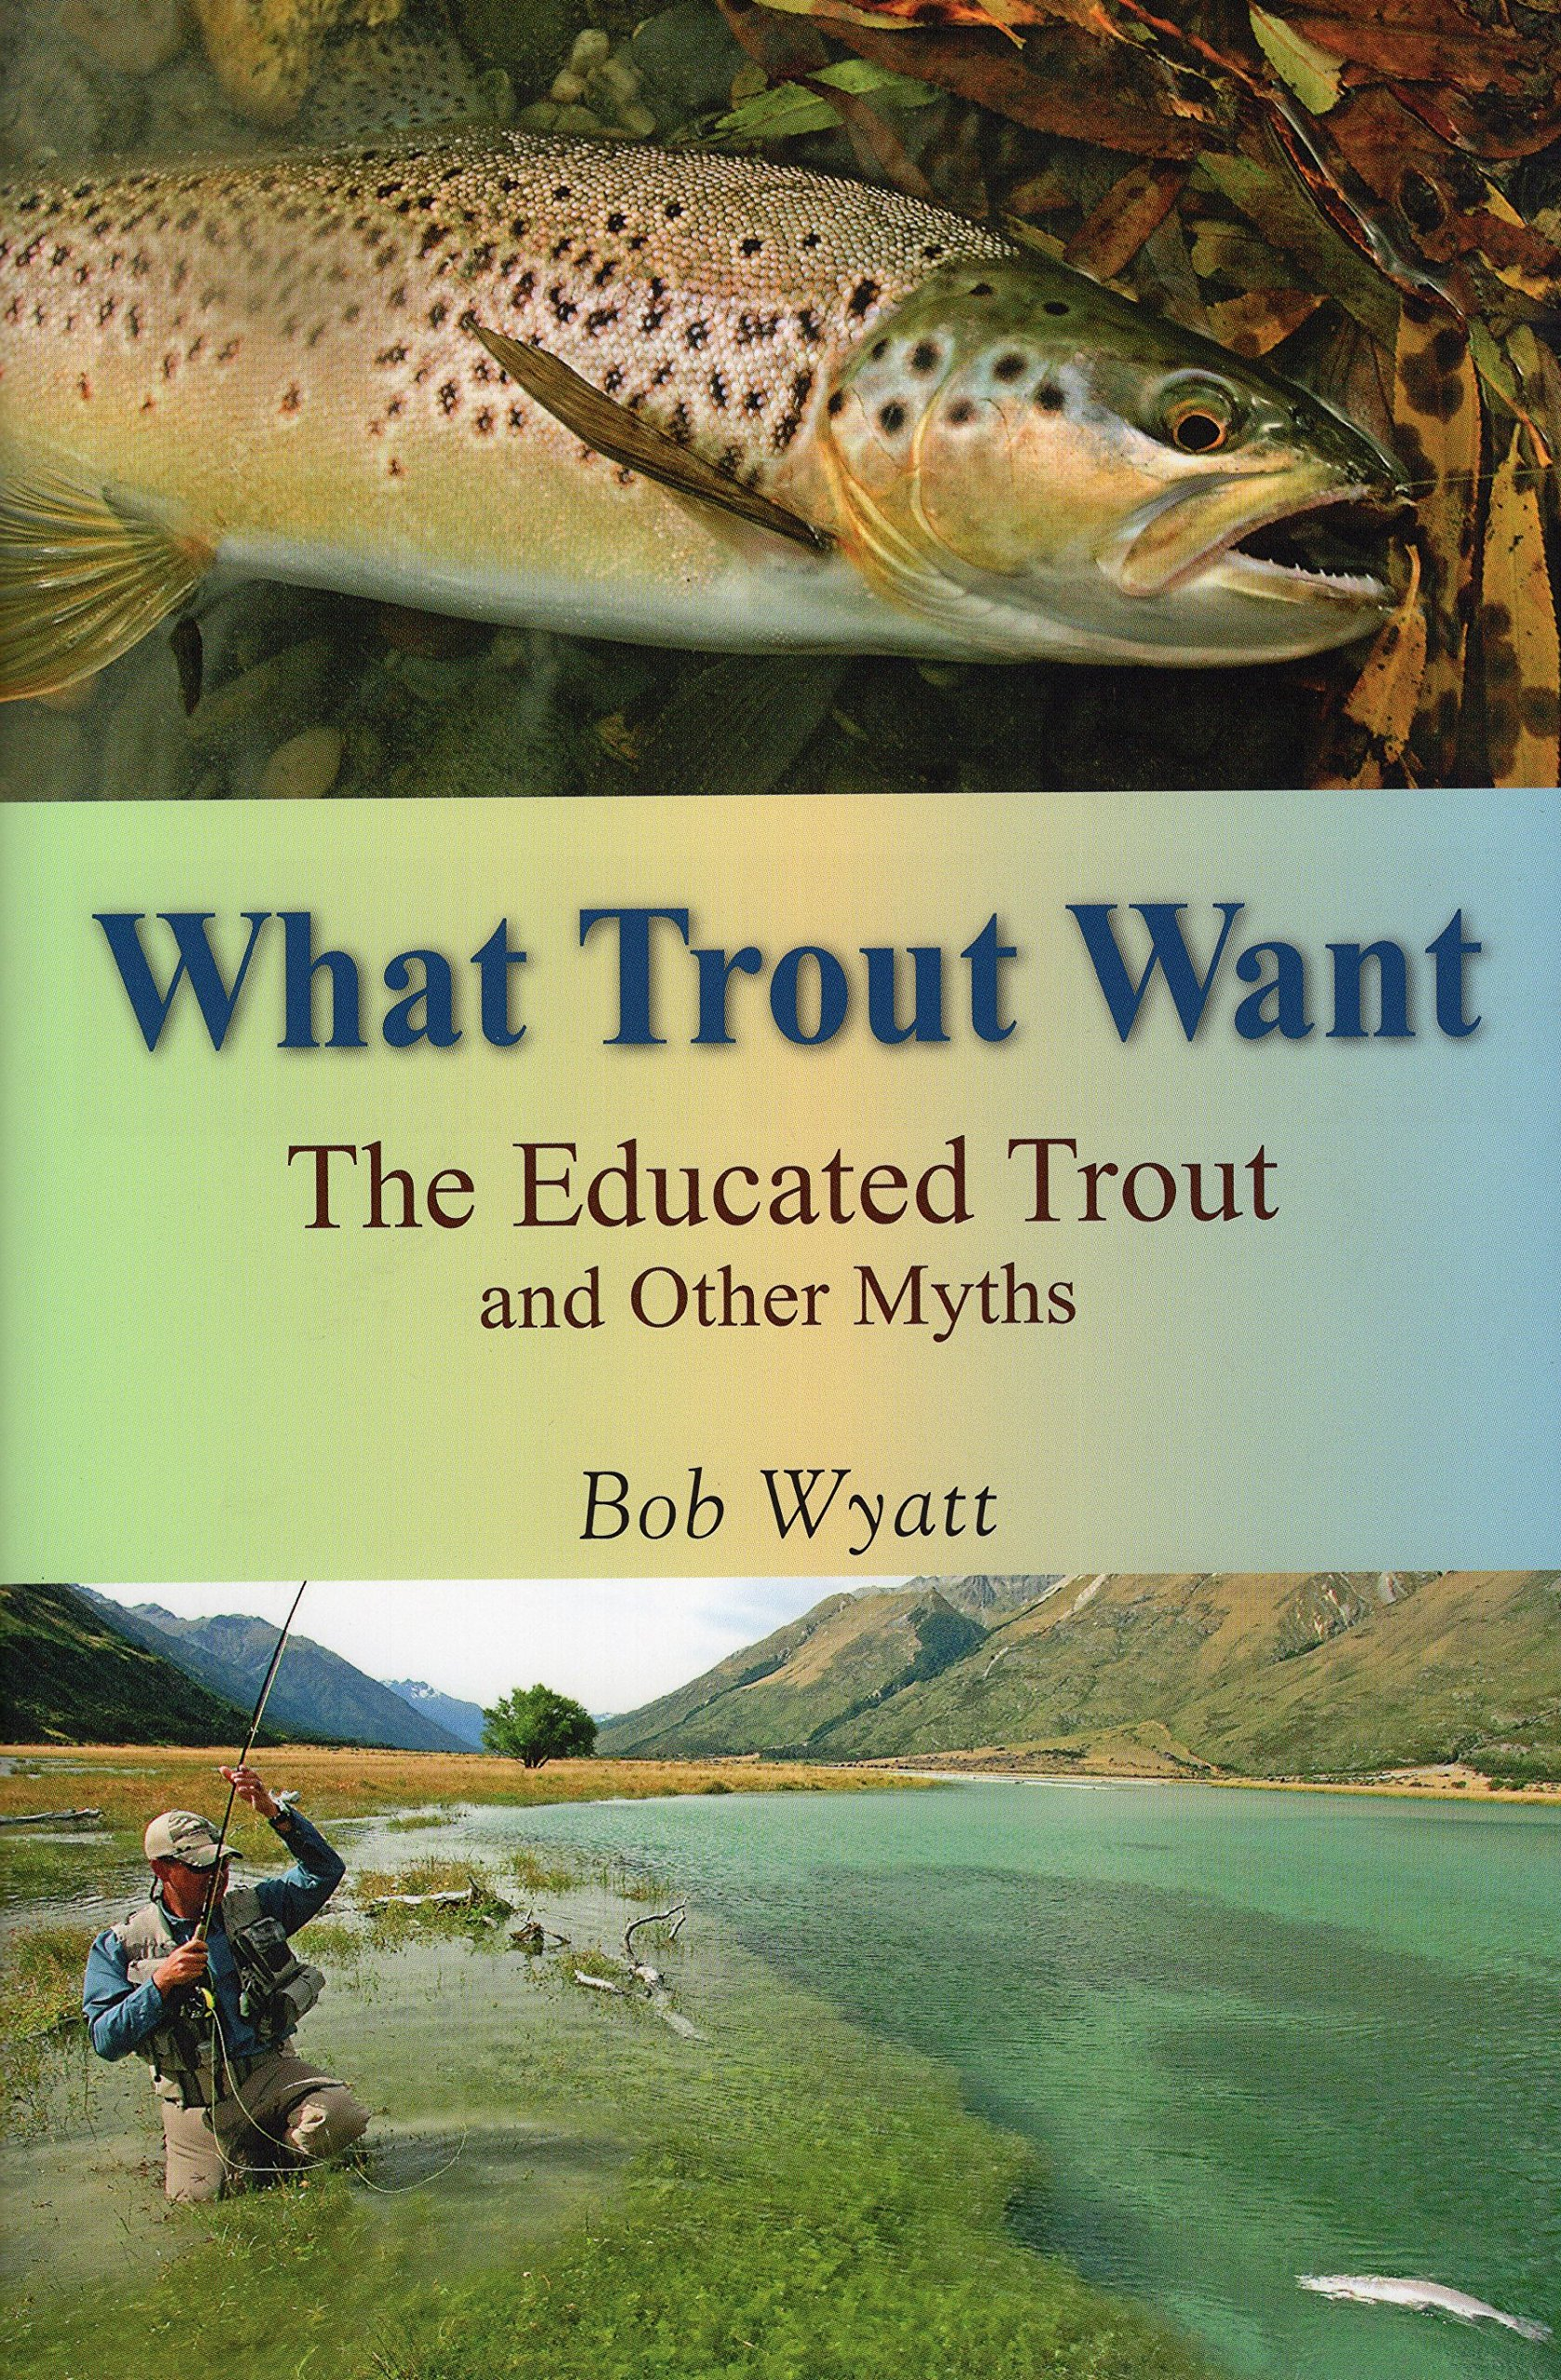 Image OfWhat Trout Want: The Educated Trout And Other Myths